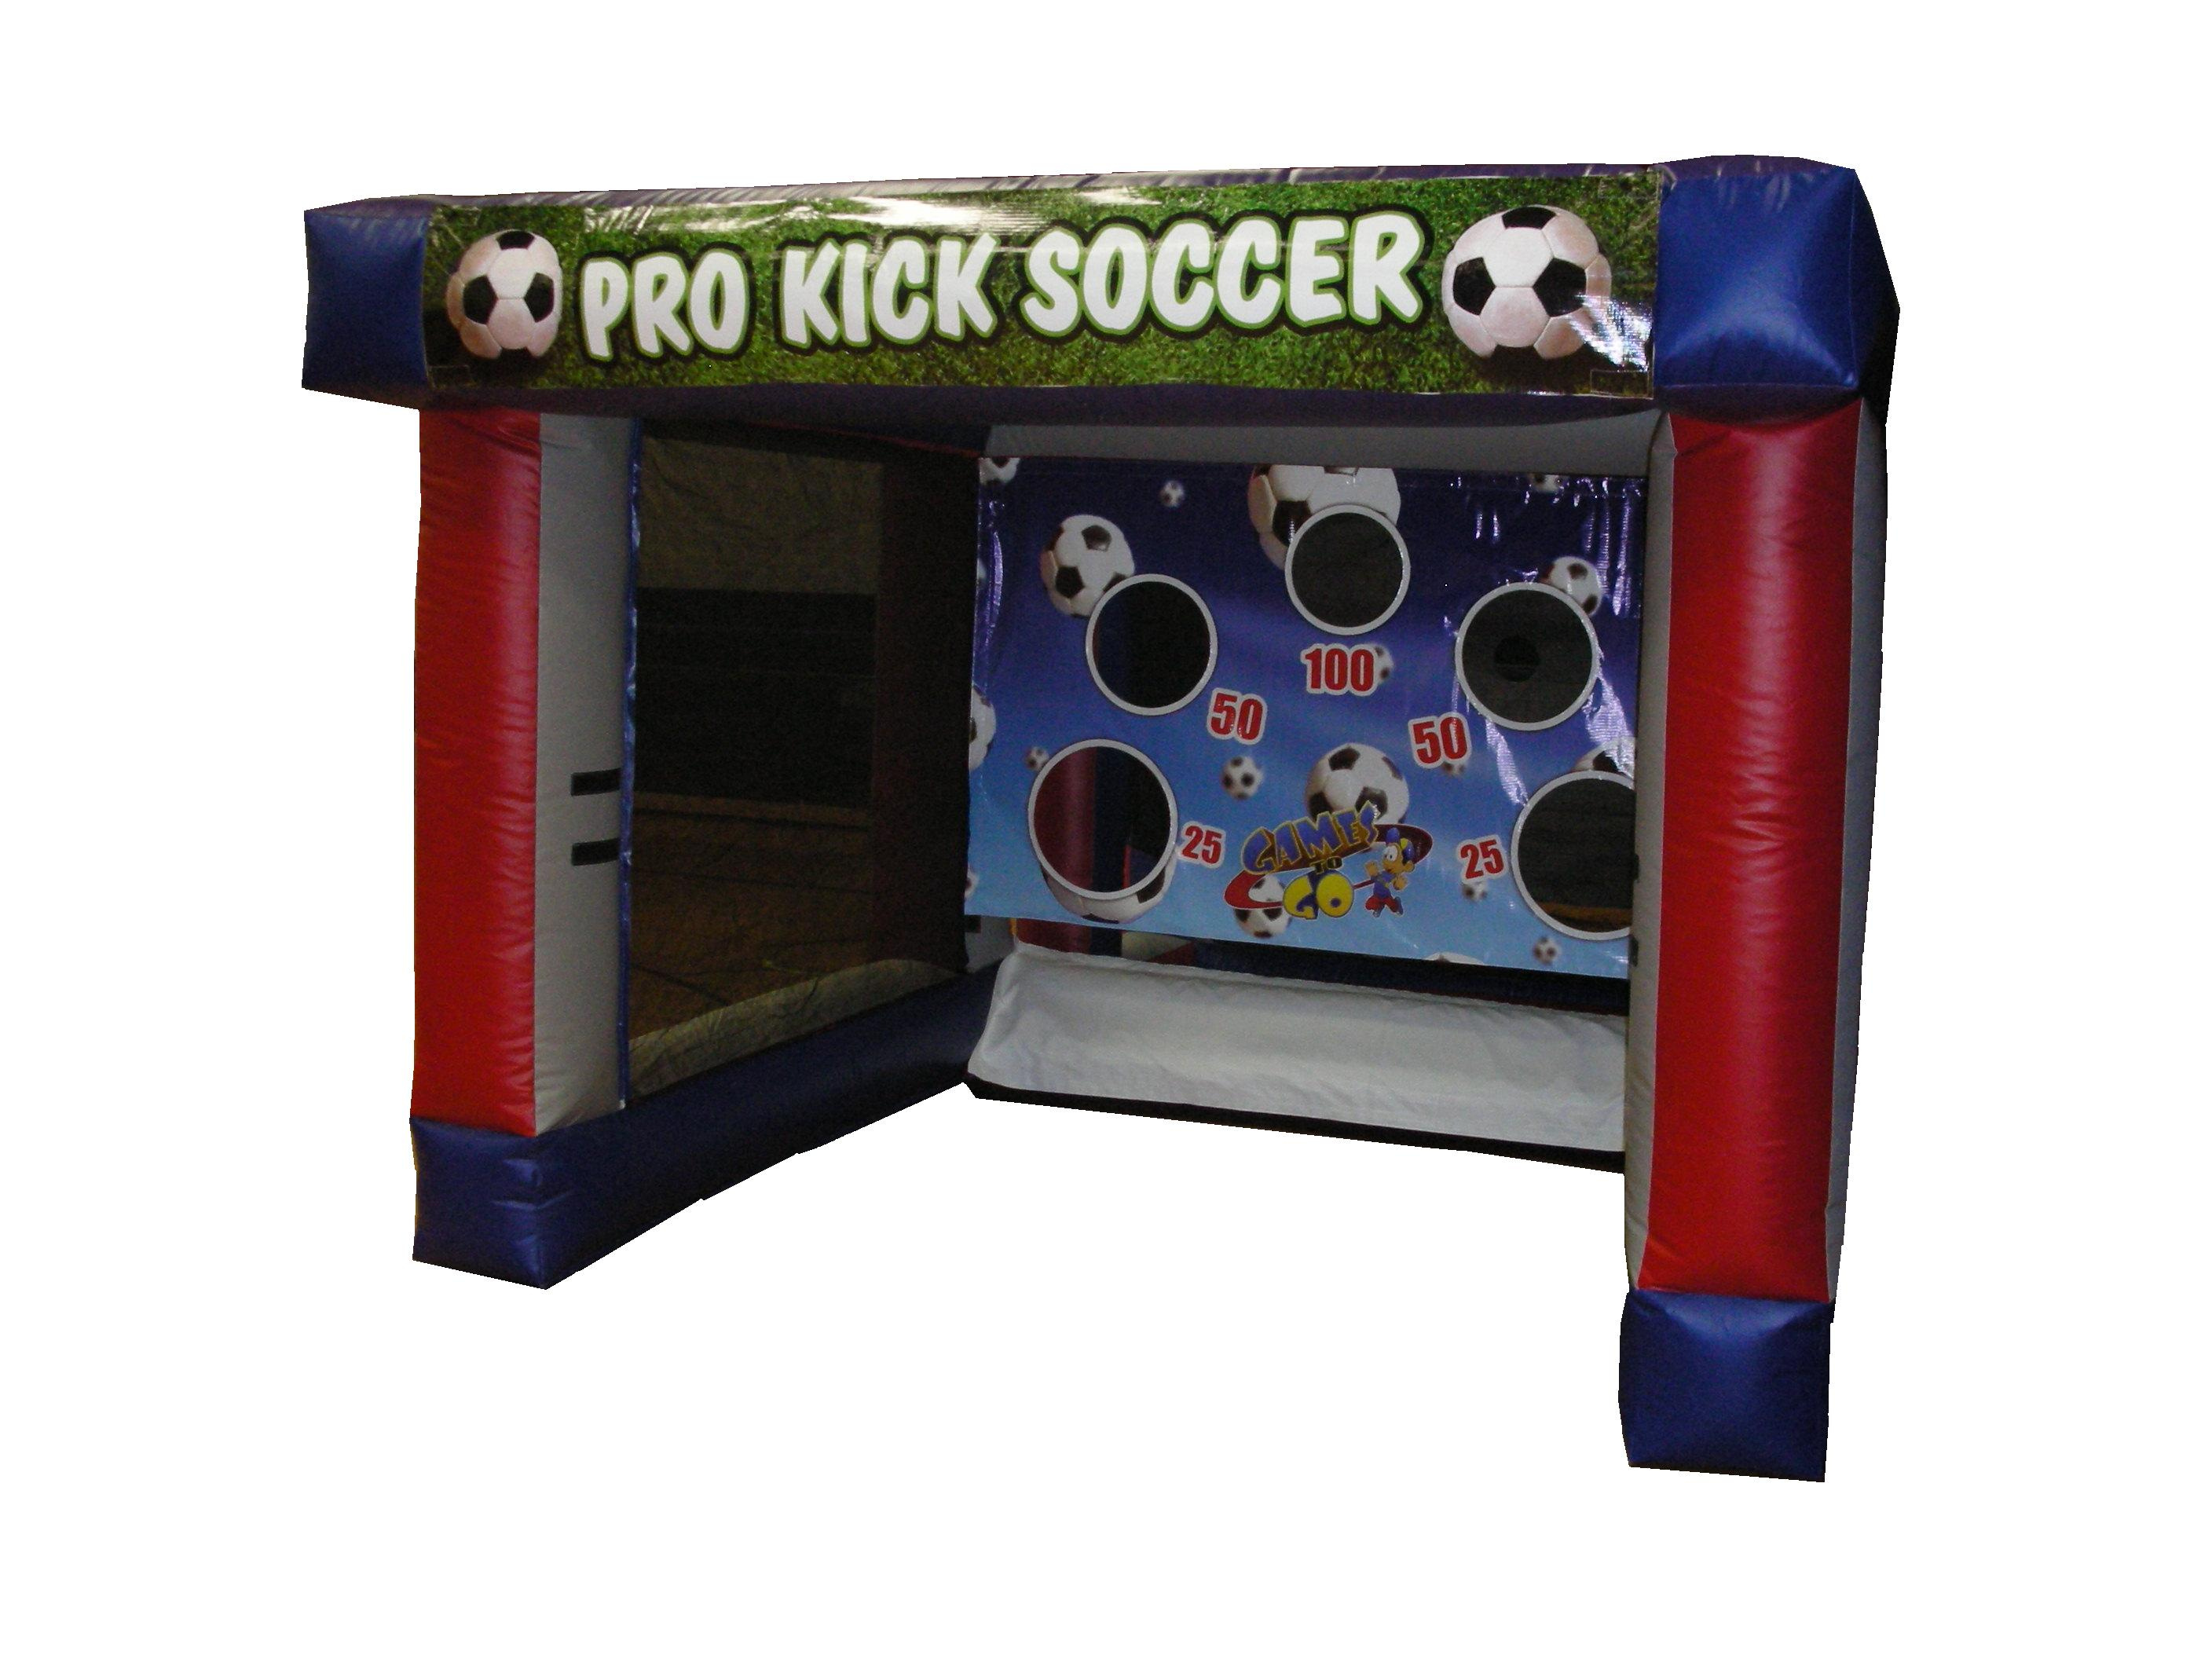 Pro Kick Soccer $100/day or weekend